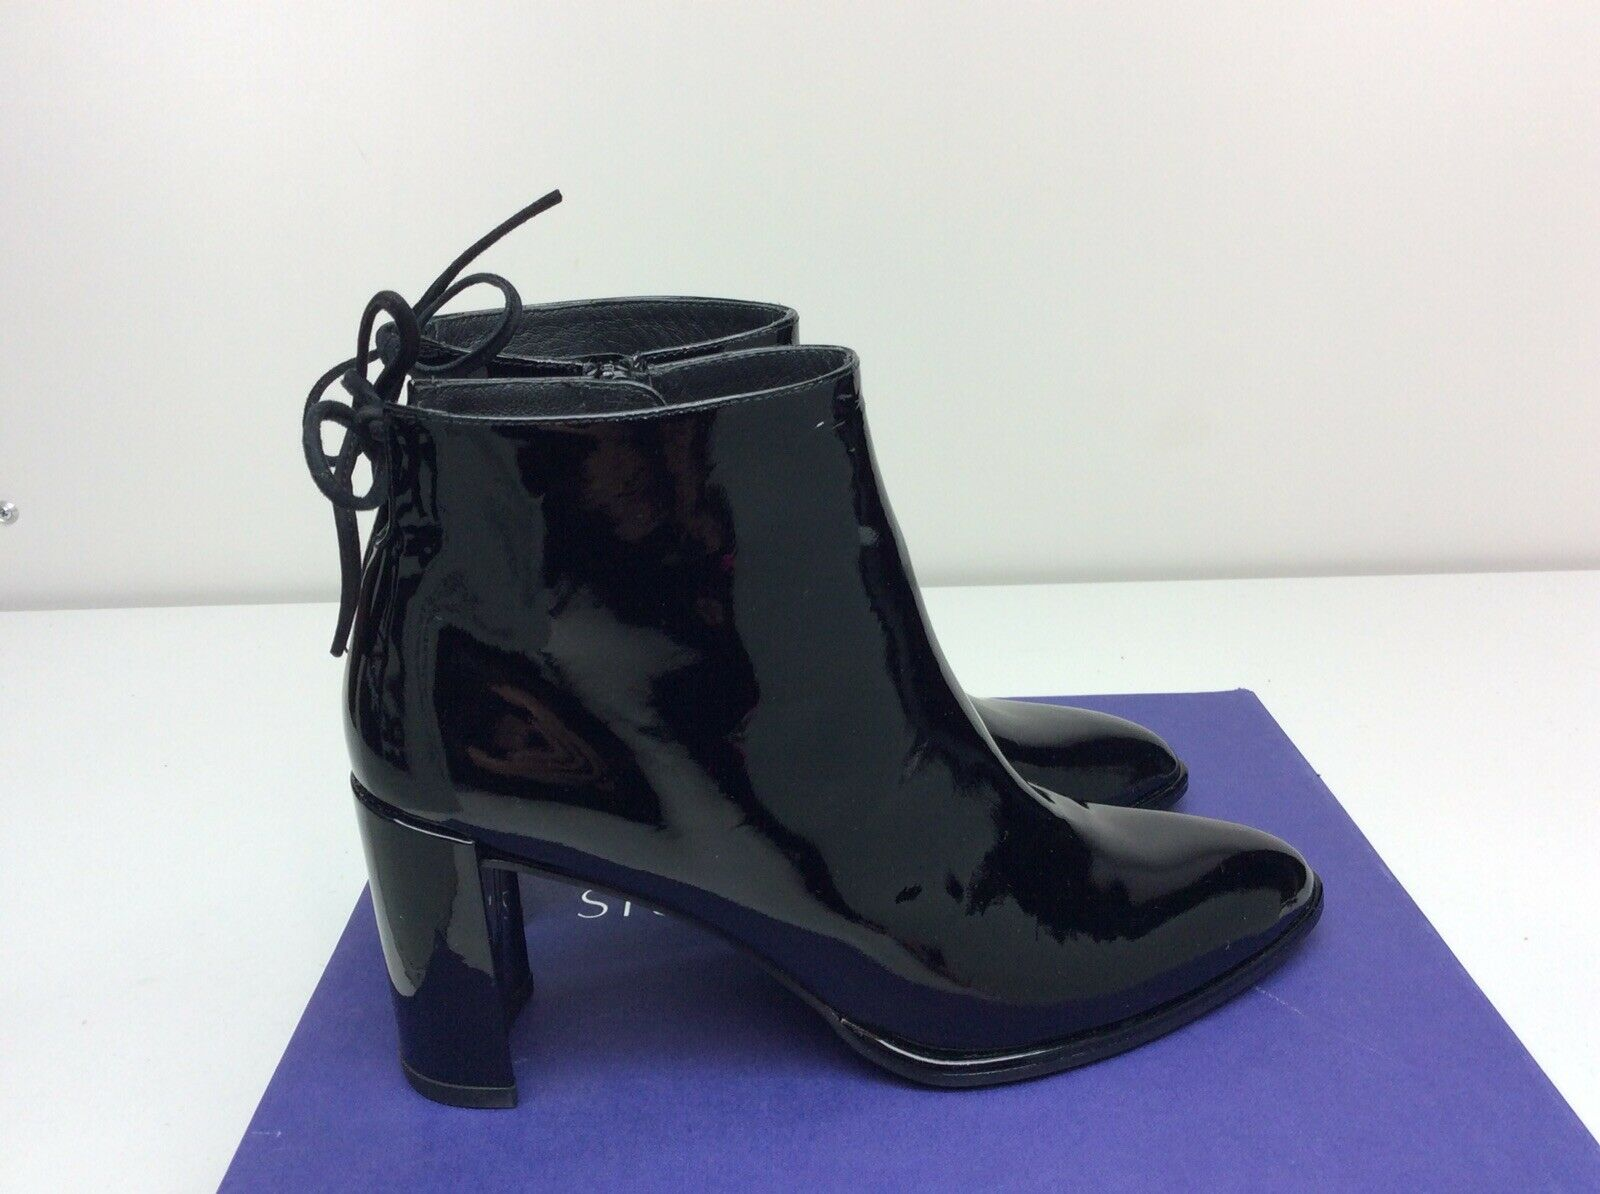 Stuart Weitzman Lofty Black Patent Leather Ankle Booties Boots Women's 7.5 M